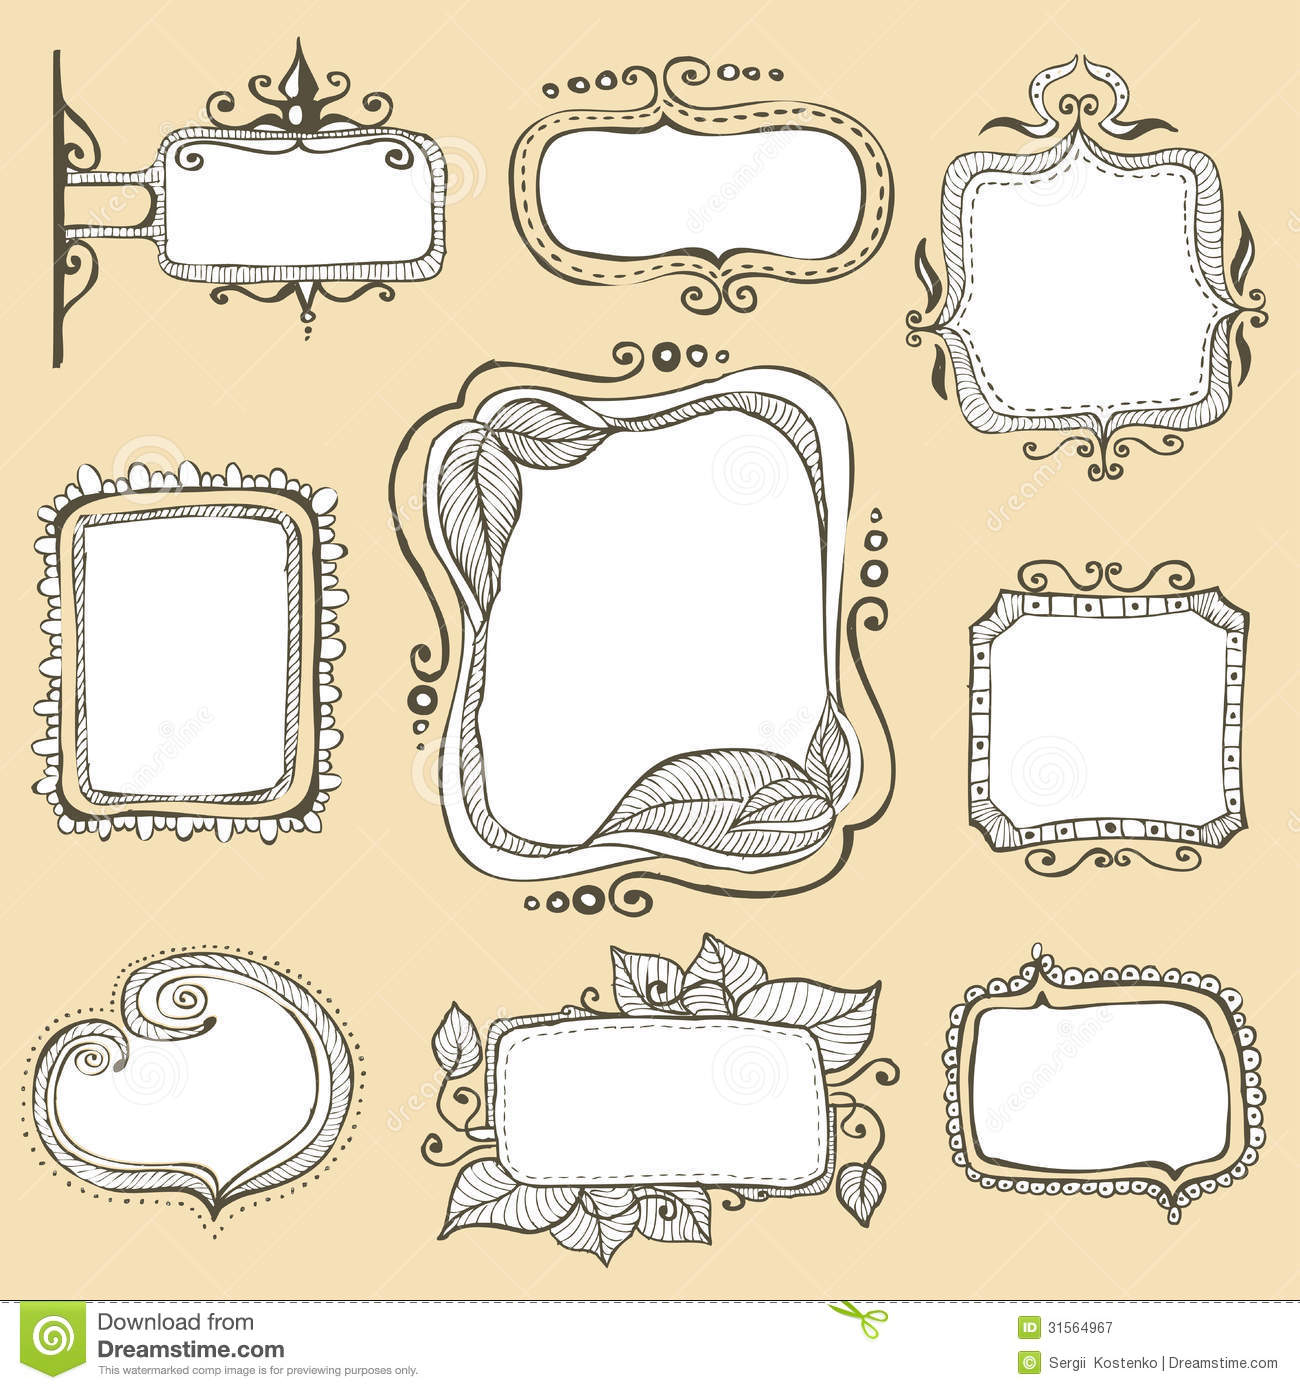 Red flowers border vector stock image - Vintage Hand Drawn Frames Collection Royalty Free Stock